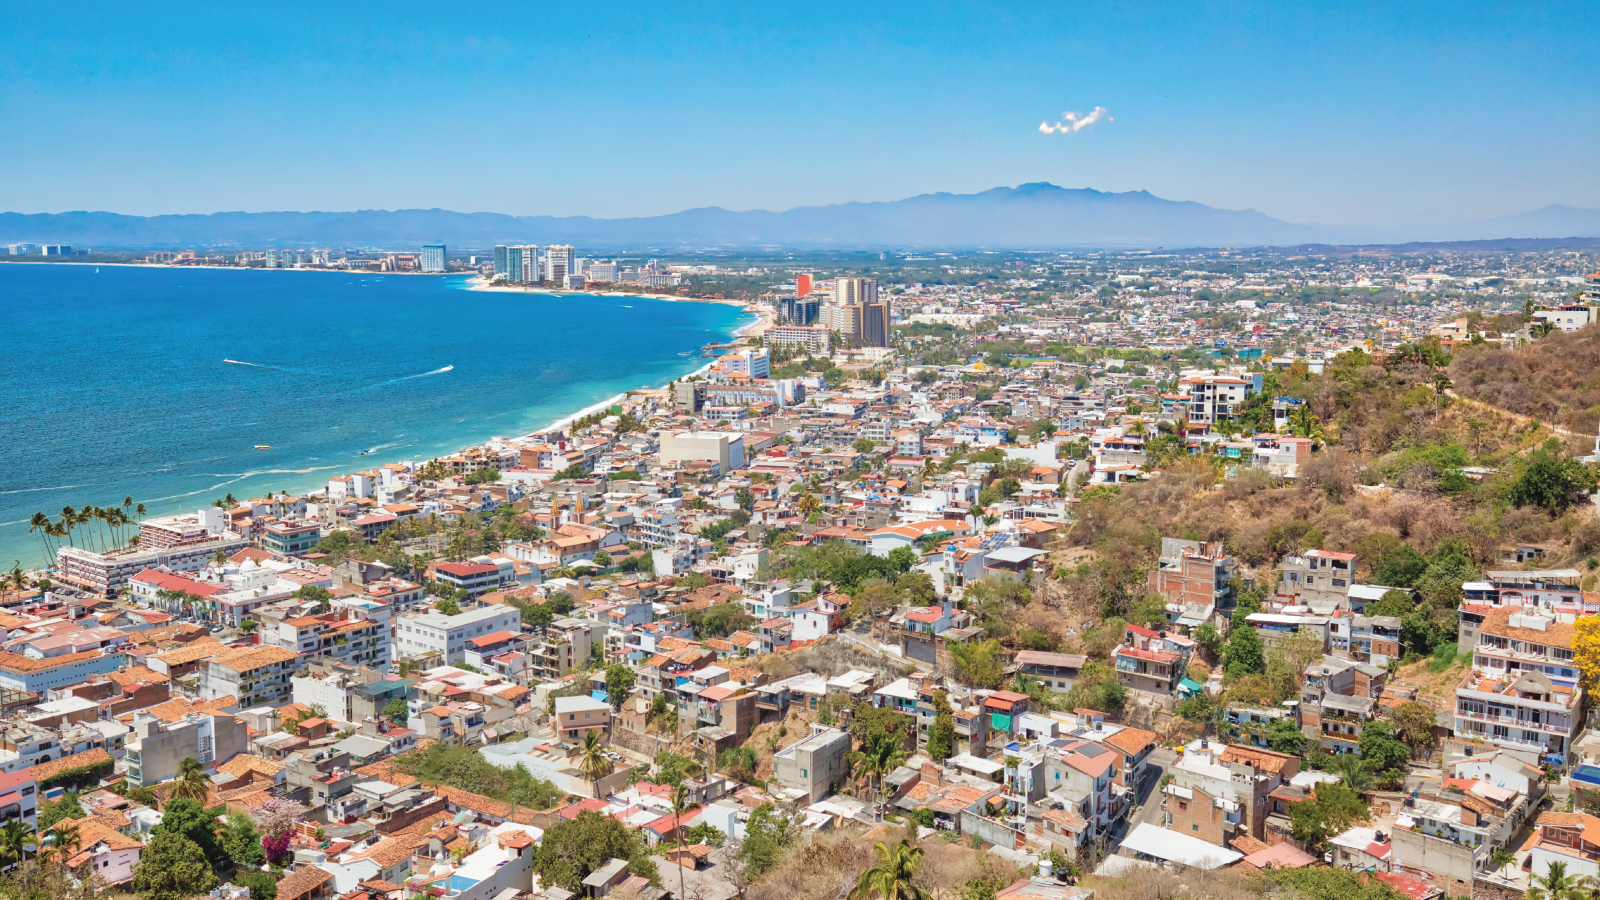 Puerto Vallarta: From Fishing Town to One of The Top Most Desirable Cities in Mexico